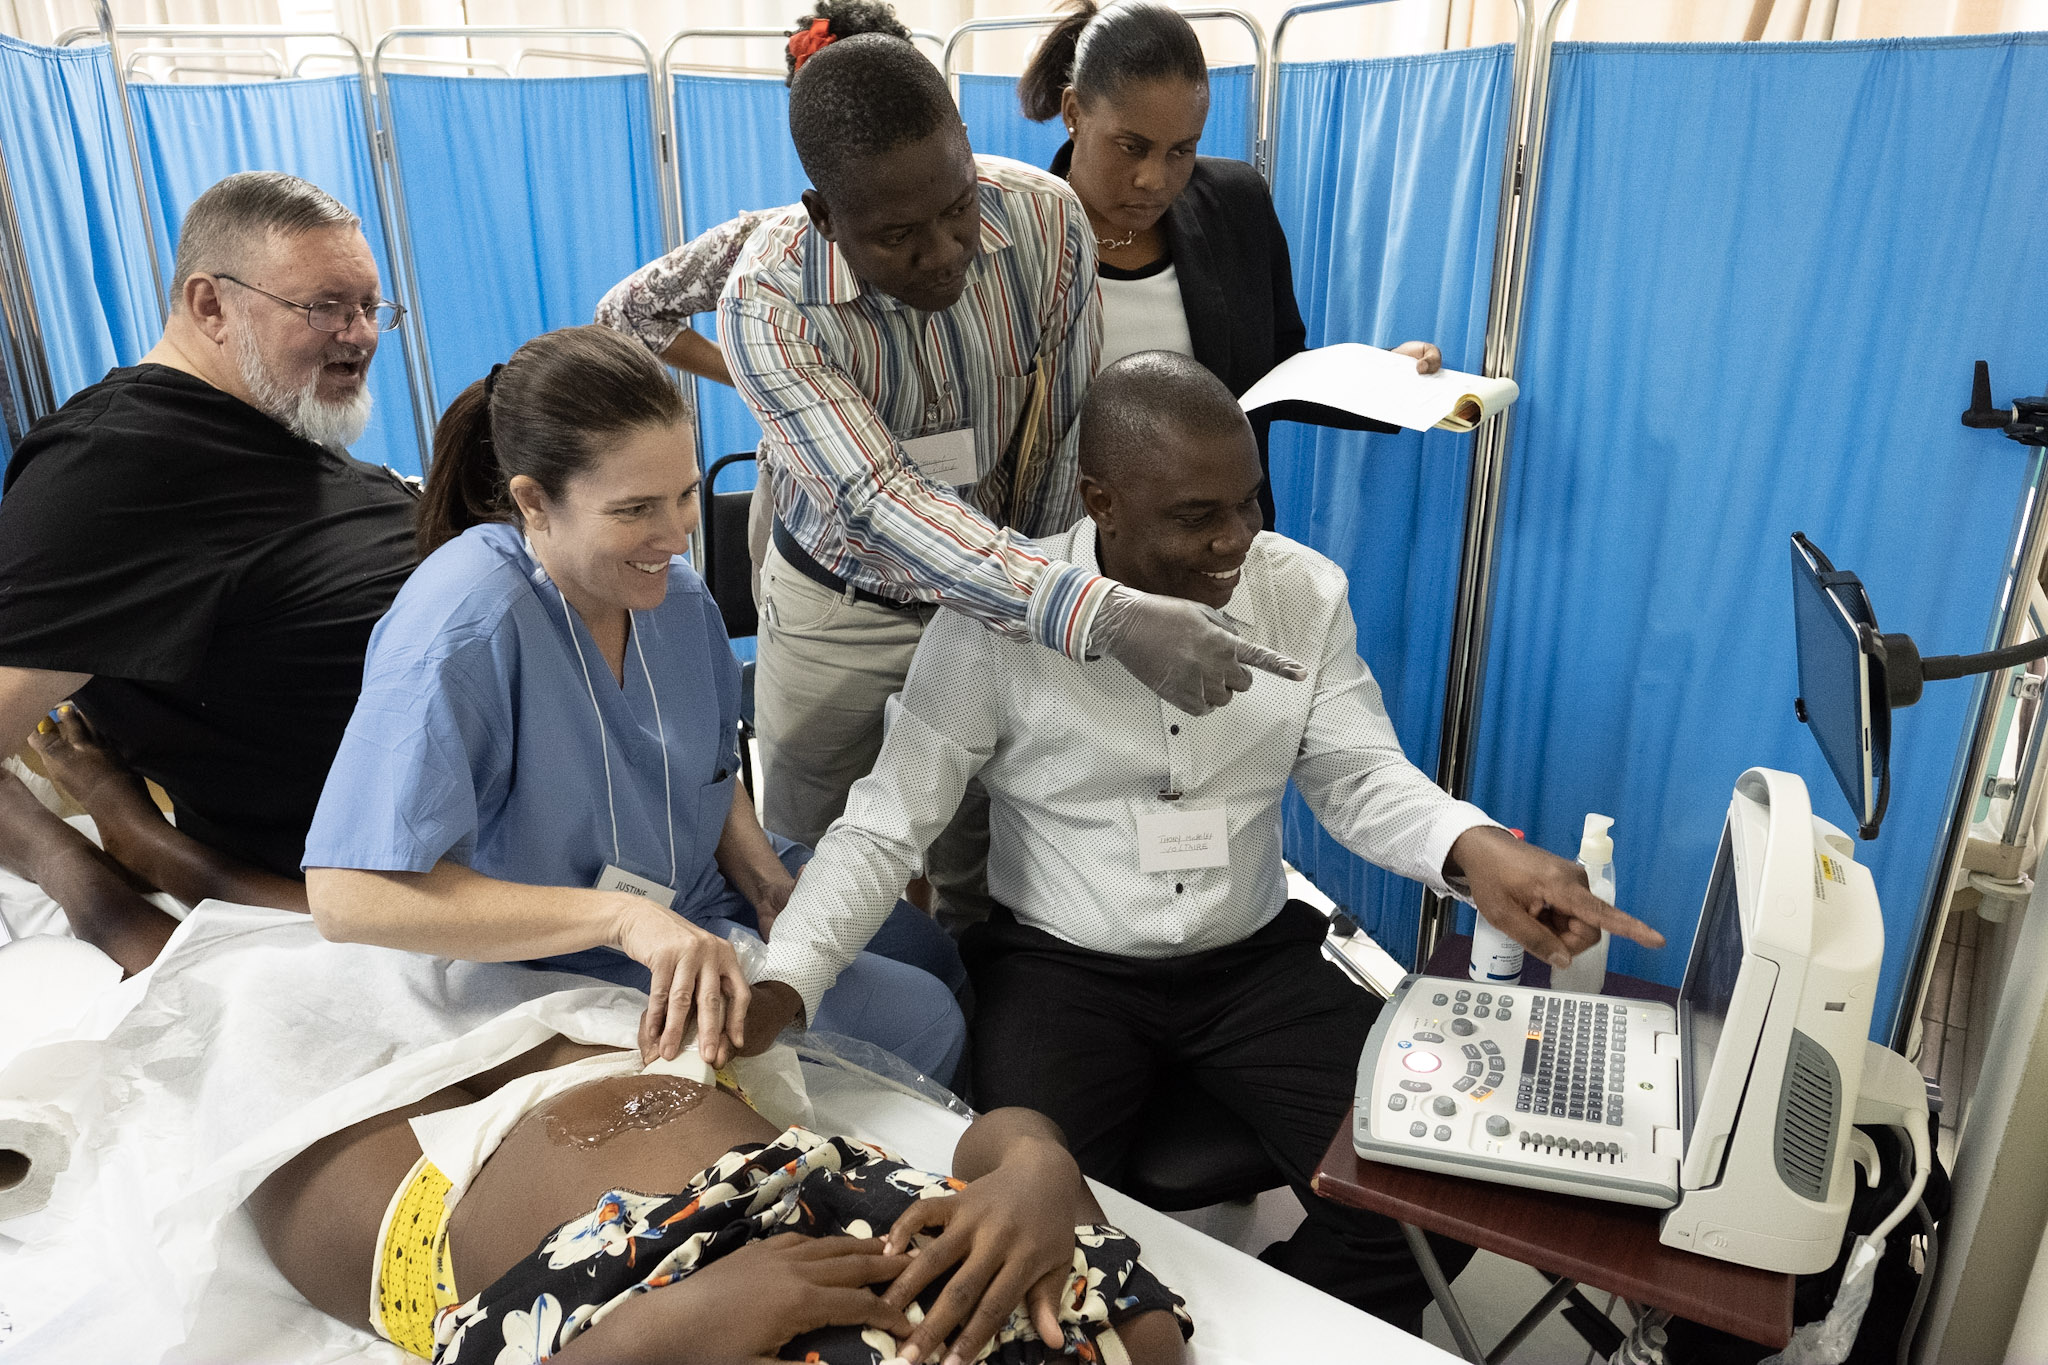 NYAGI Instructor Justine Campbell working with local Haitian providers.